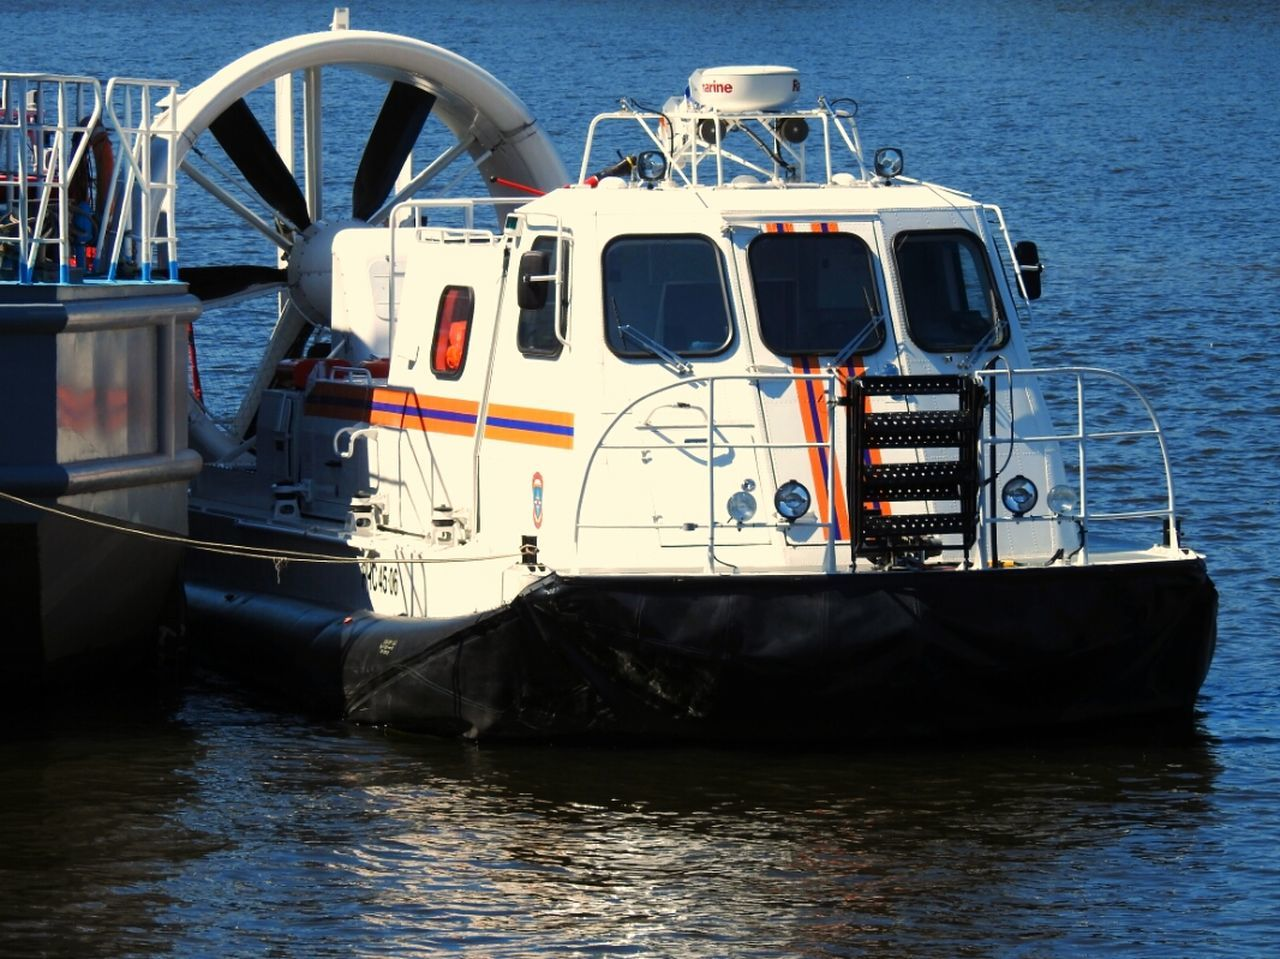 The Boat Hovercraft MCHS Rescuers River Neva Embankment Sankt-Petersburg Feel The Journey The Innovator